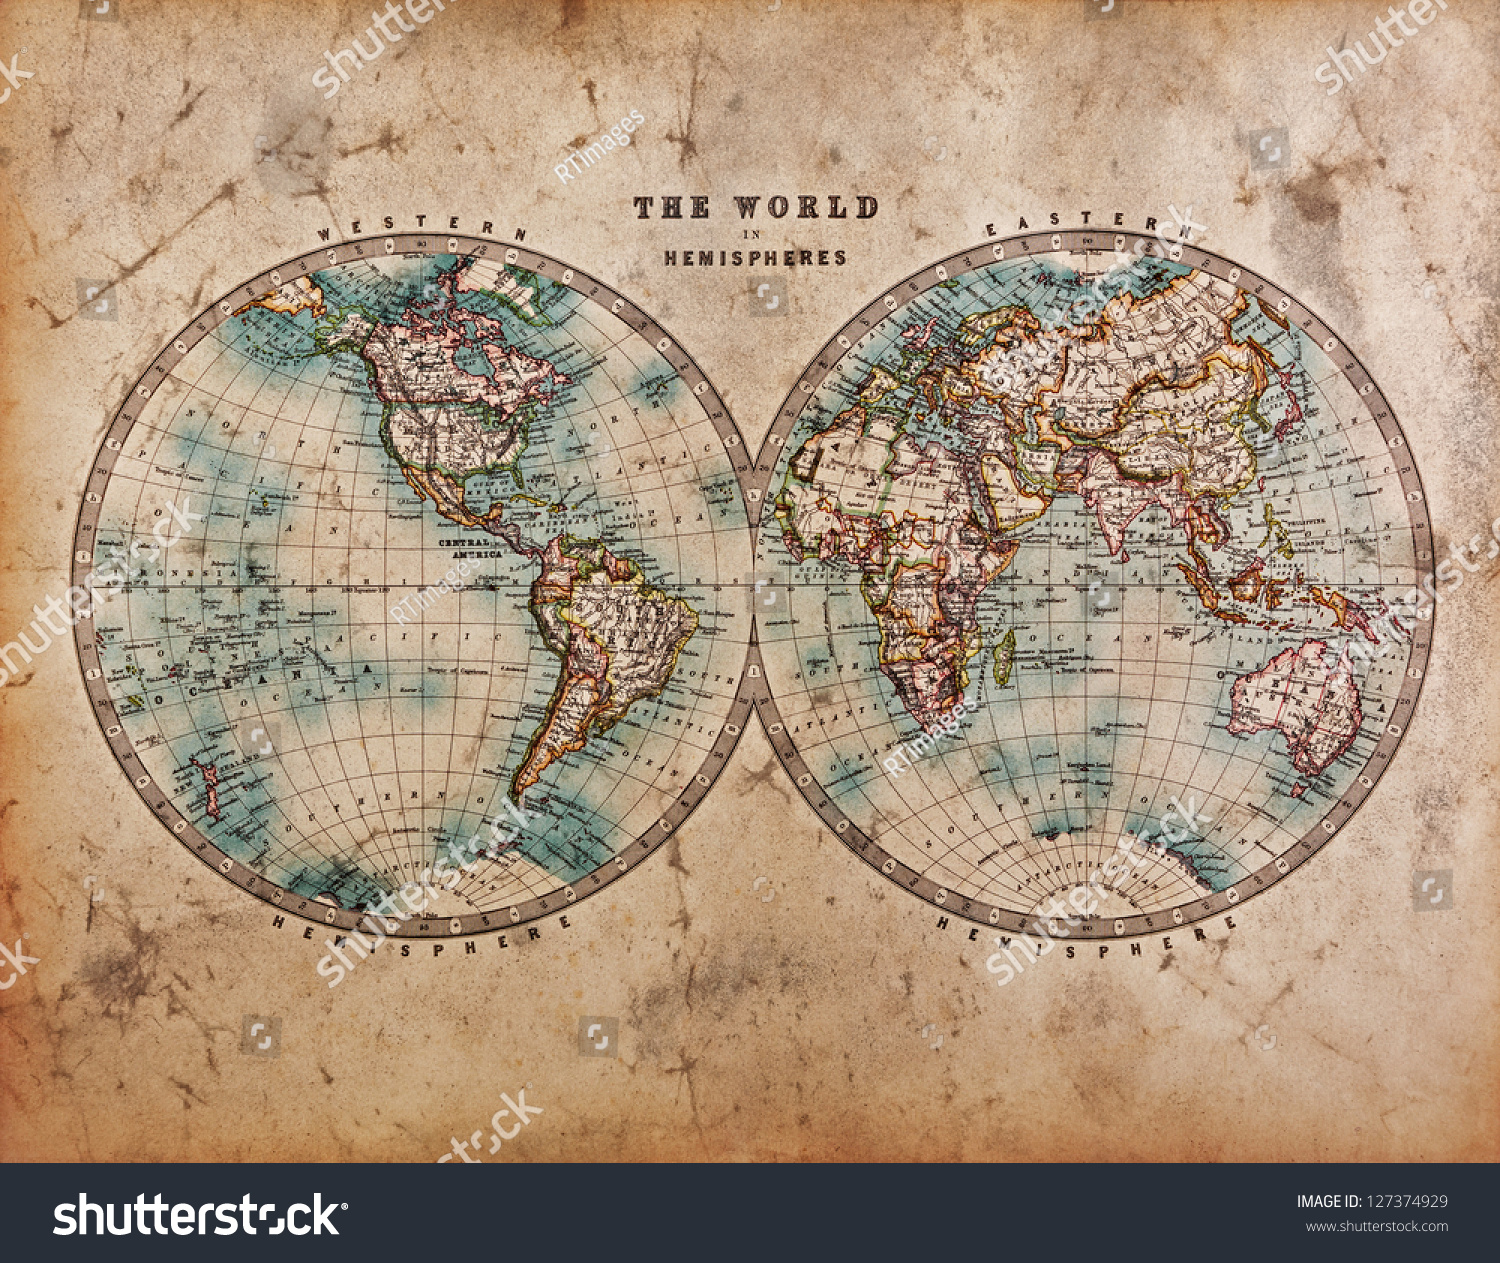 A Genuine Old Stained World Map Dated From The Mid 1800 39 S Showing Western